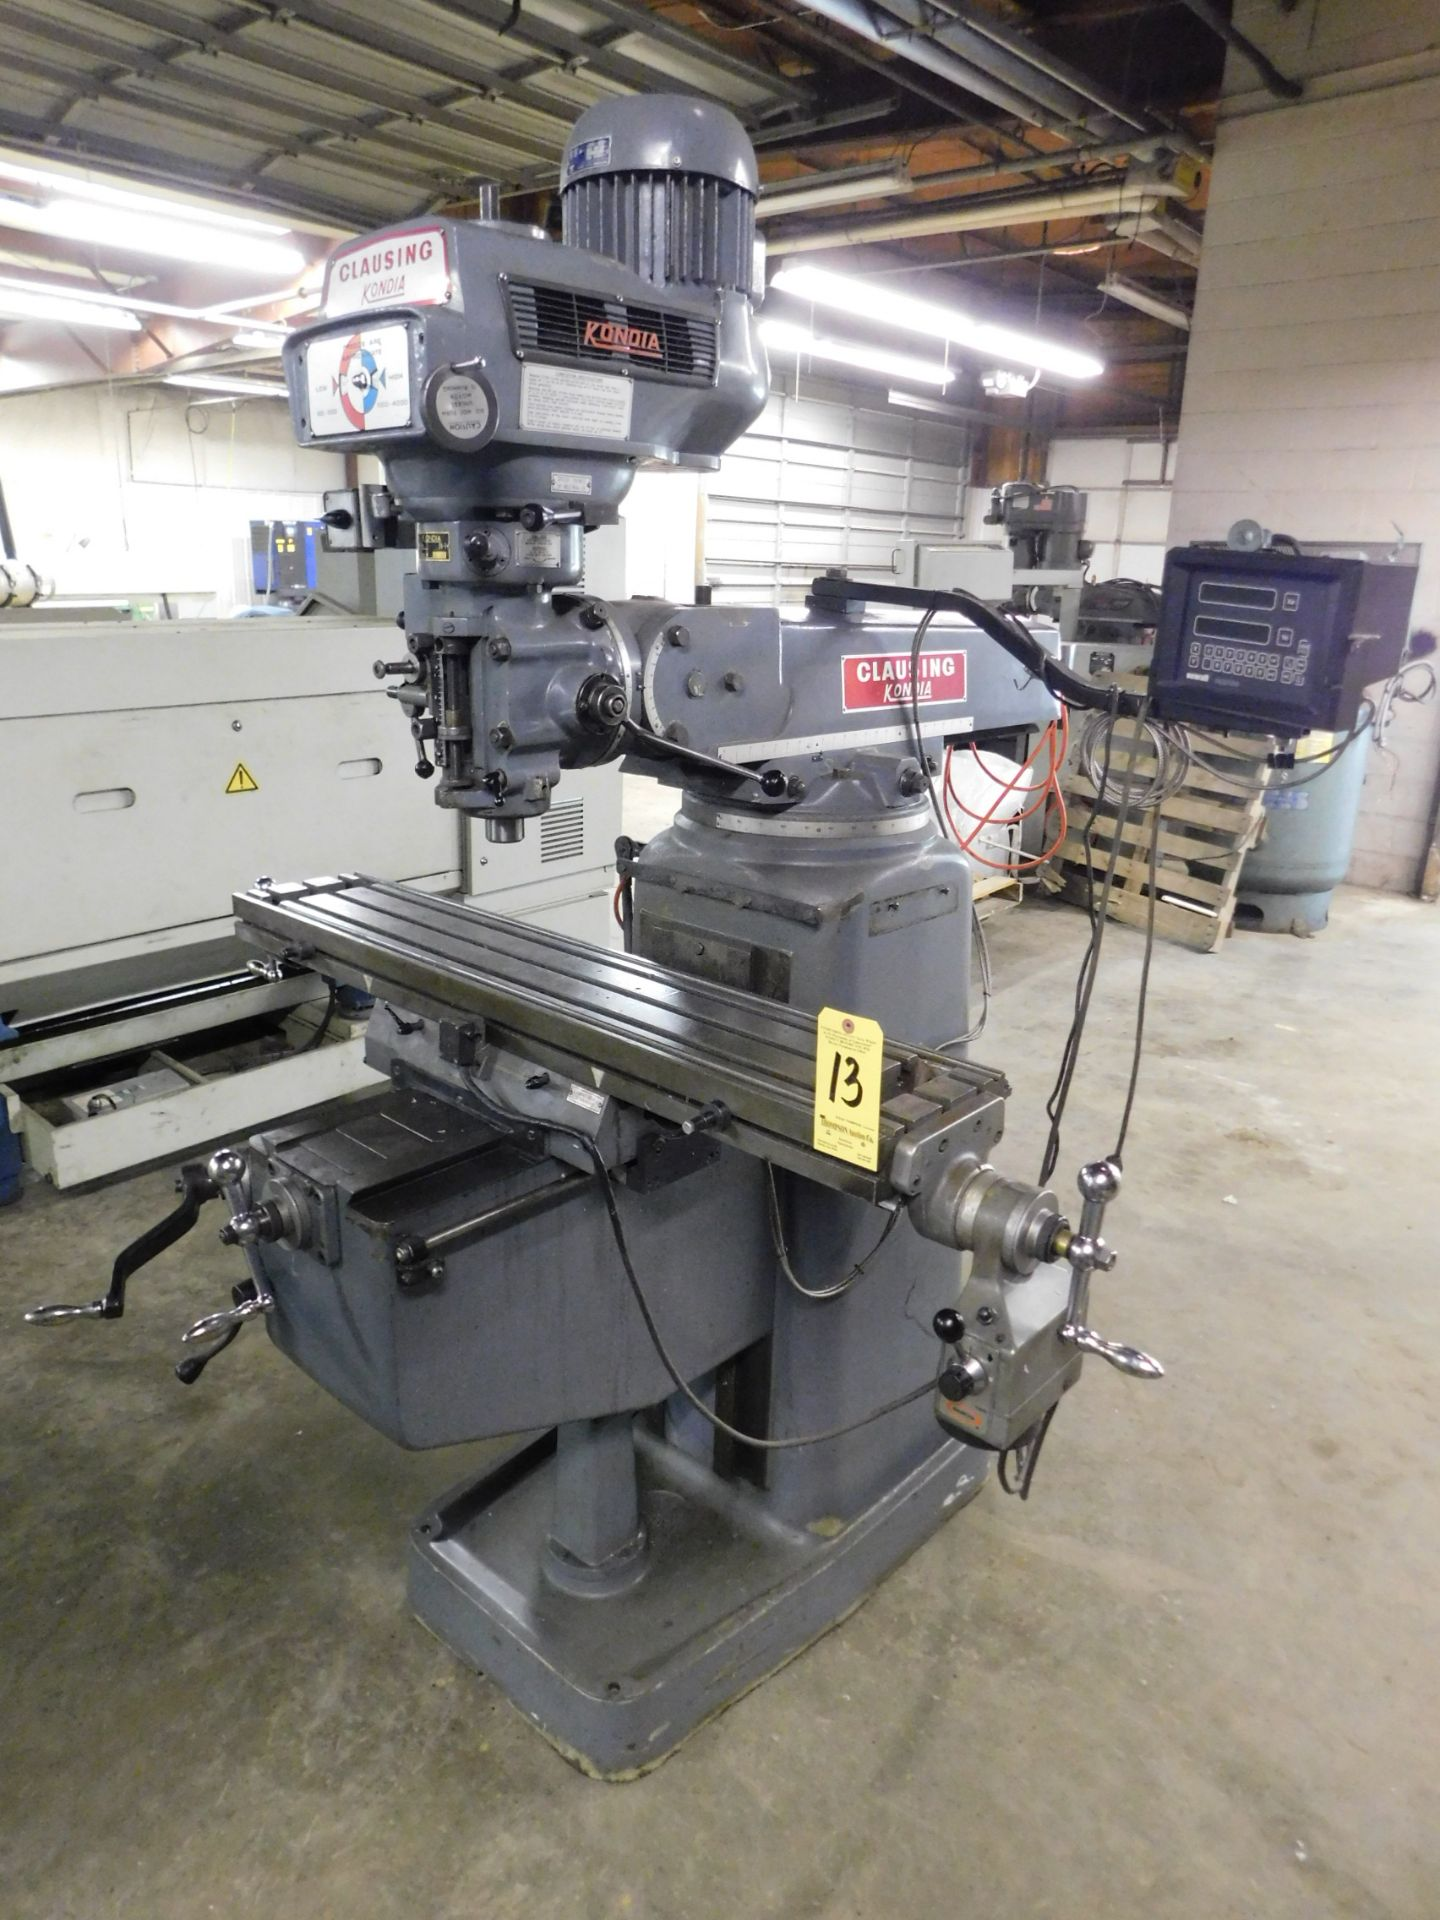 """Lot 13 - Clausing Kondia FV-1 Variable Speed Vertical Mill SN X-86, Servo Table Powerfeed, 9"""" x 48"""" Table,"""